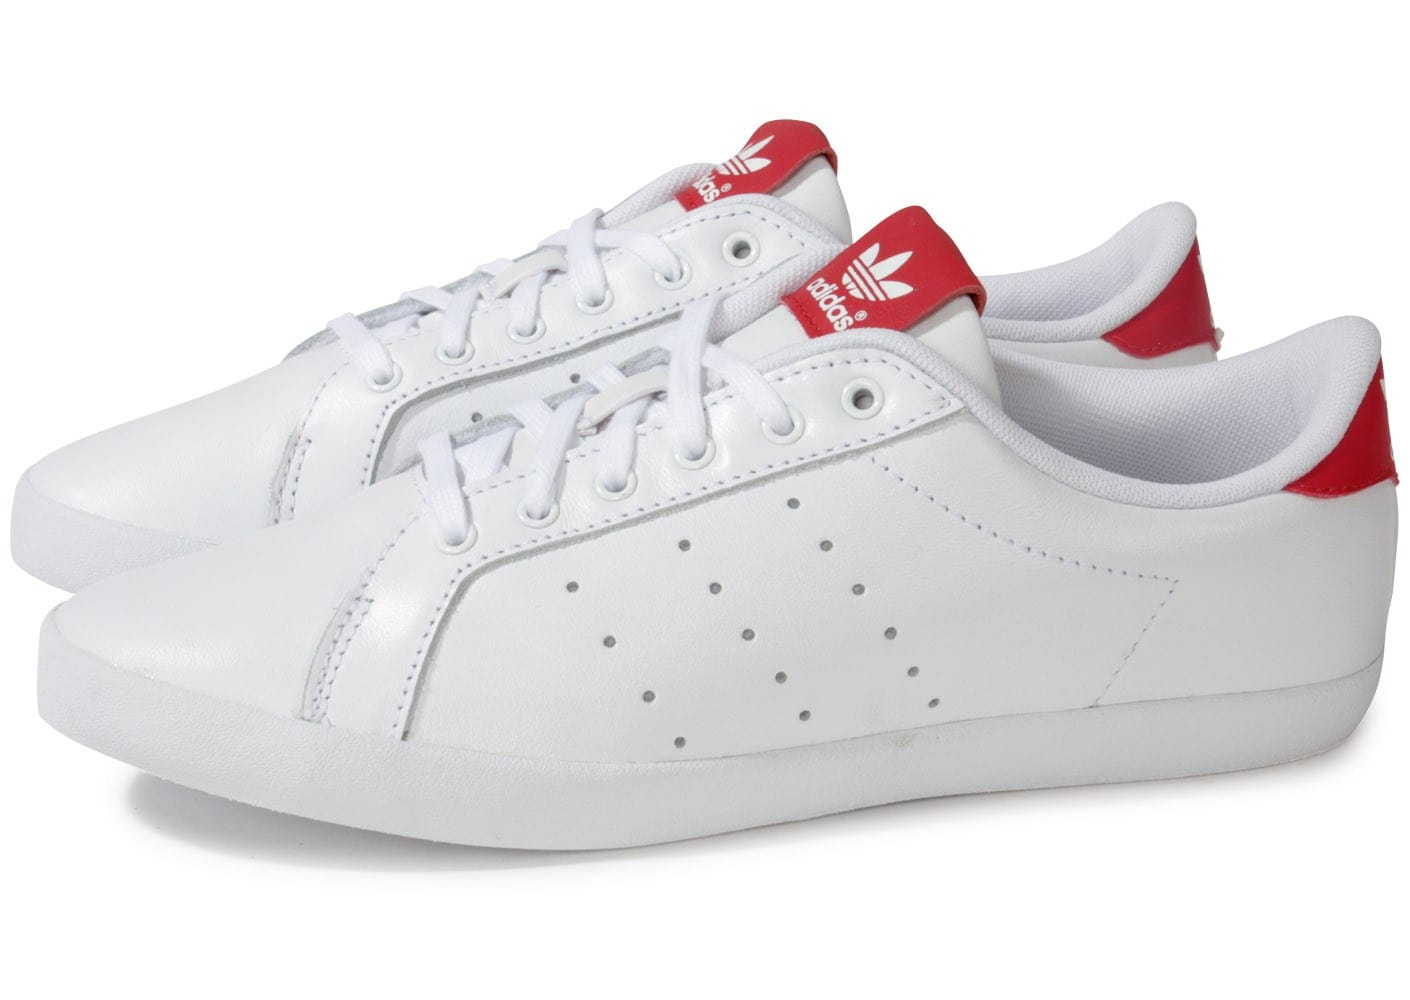 adidas Miss Stan blanche rouge Chaussures adidas Chausport